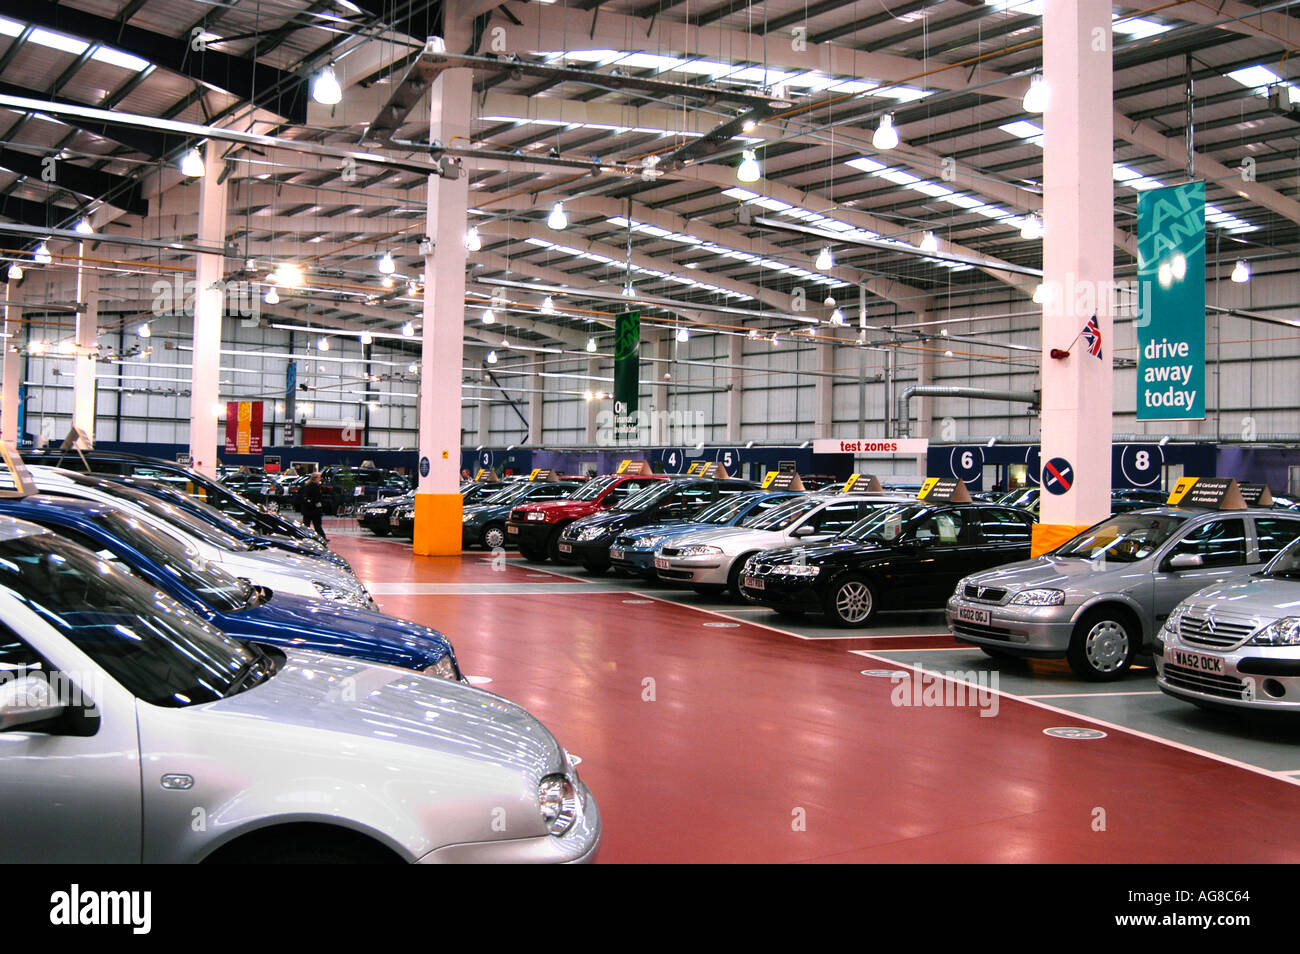 Used Car Dealers London >> Carland Used Car Showroom London England Uk Stock Photo 1084515 Alamy